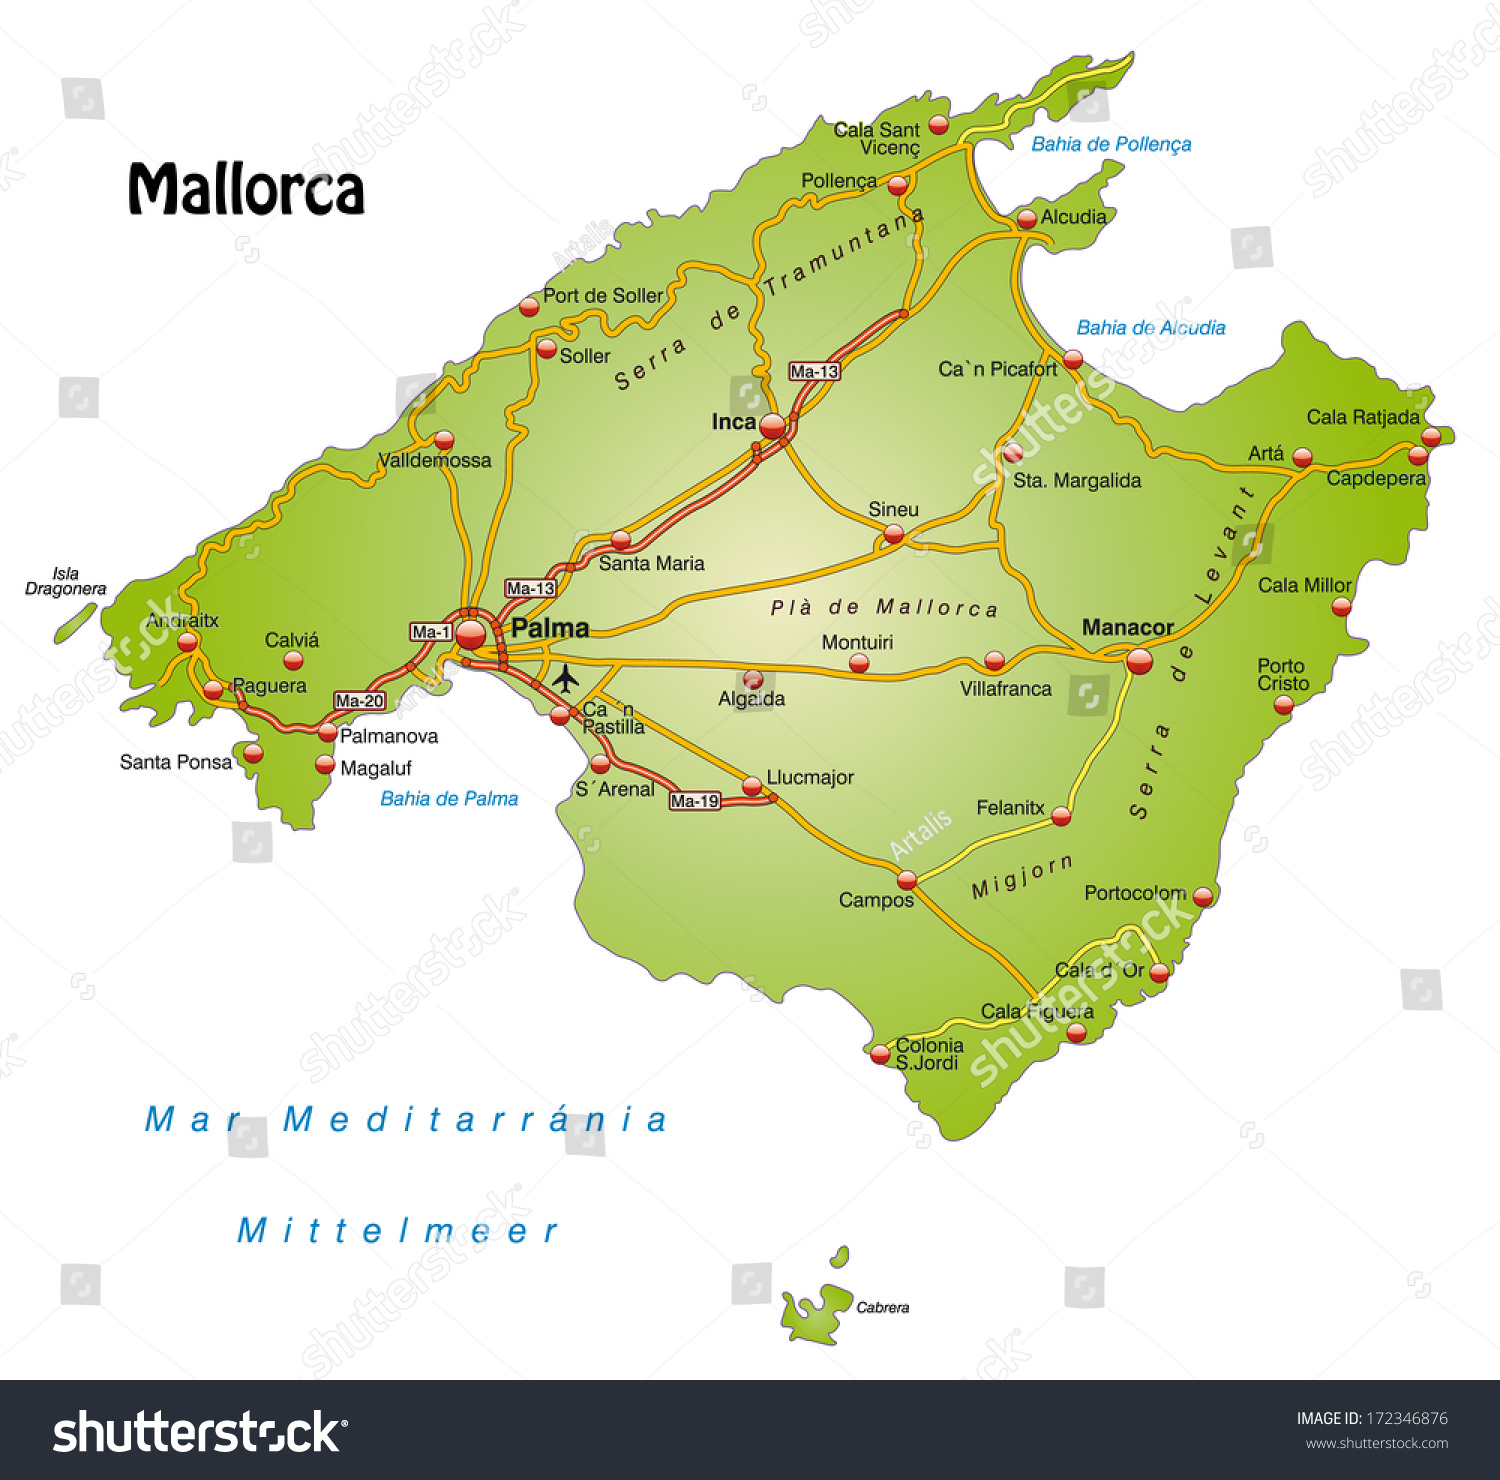 Mallorca Map Images Stock Photos Vectors Shutterstock